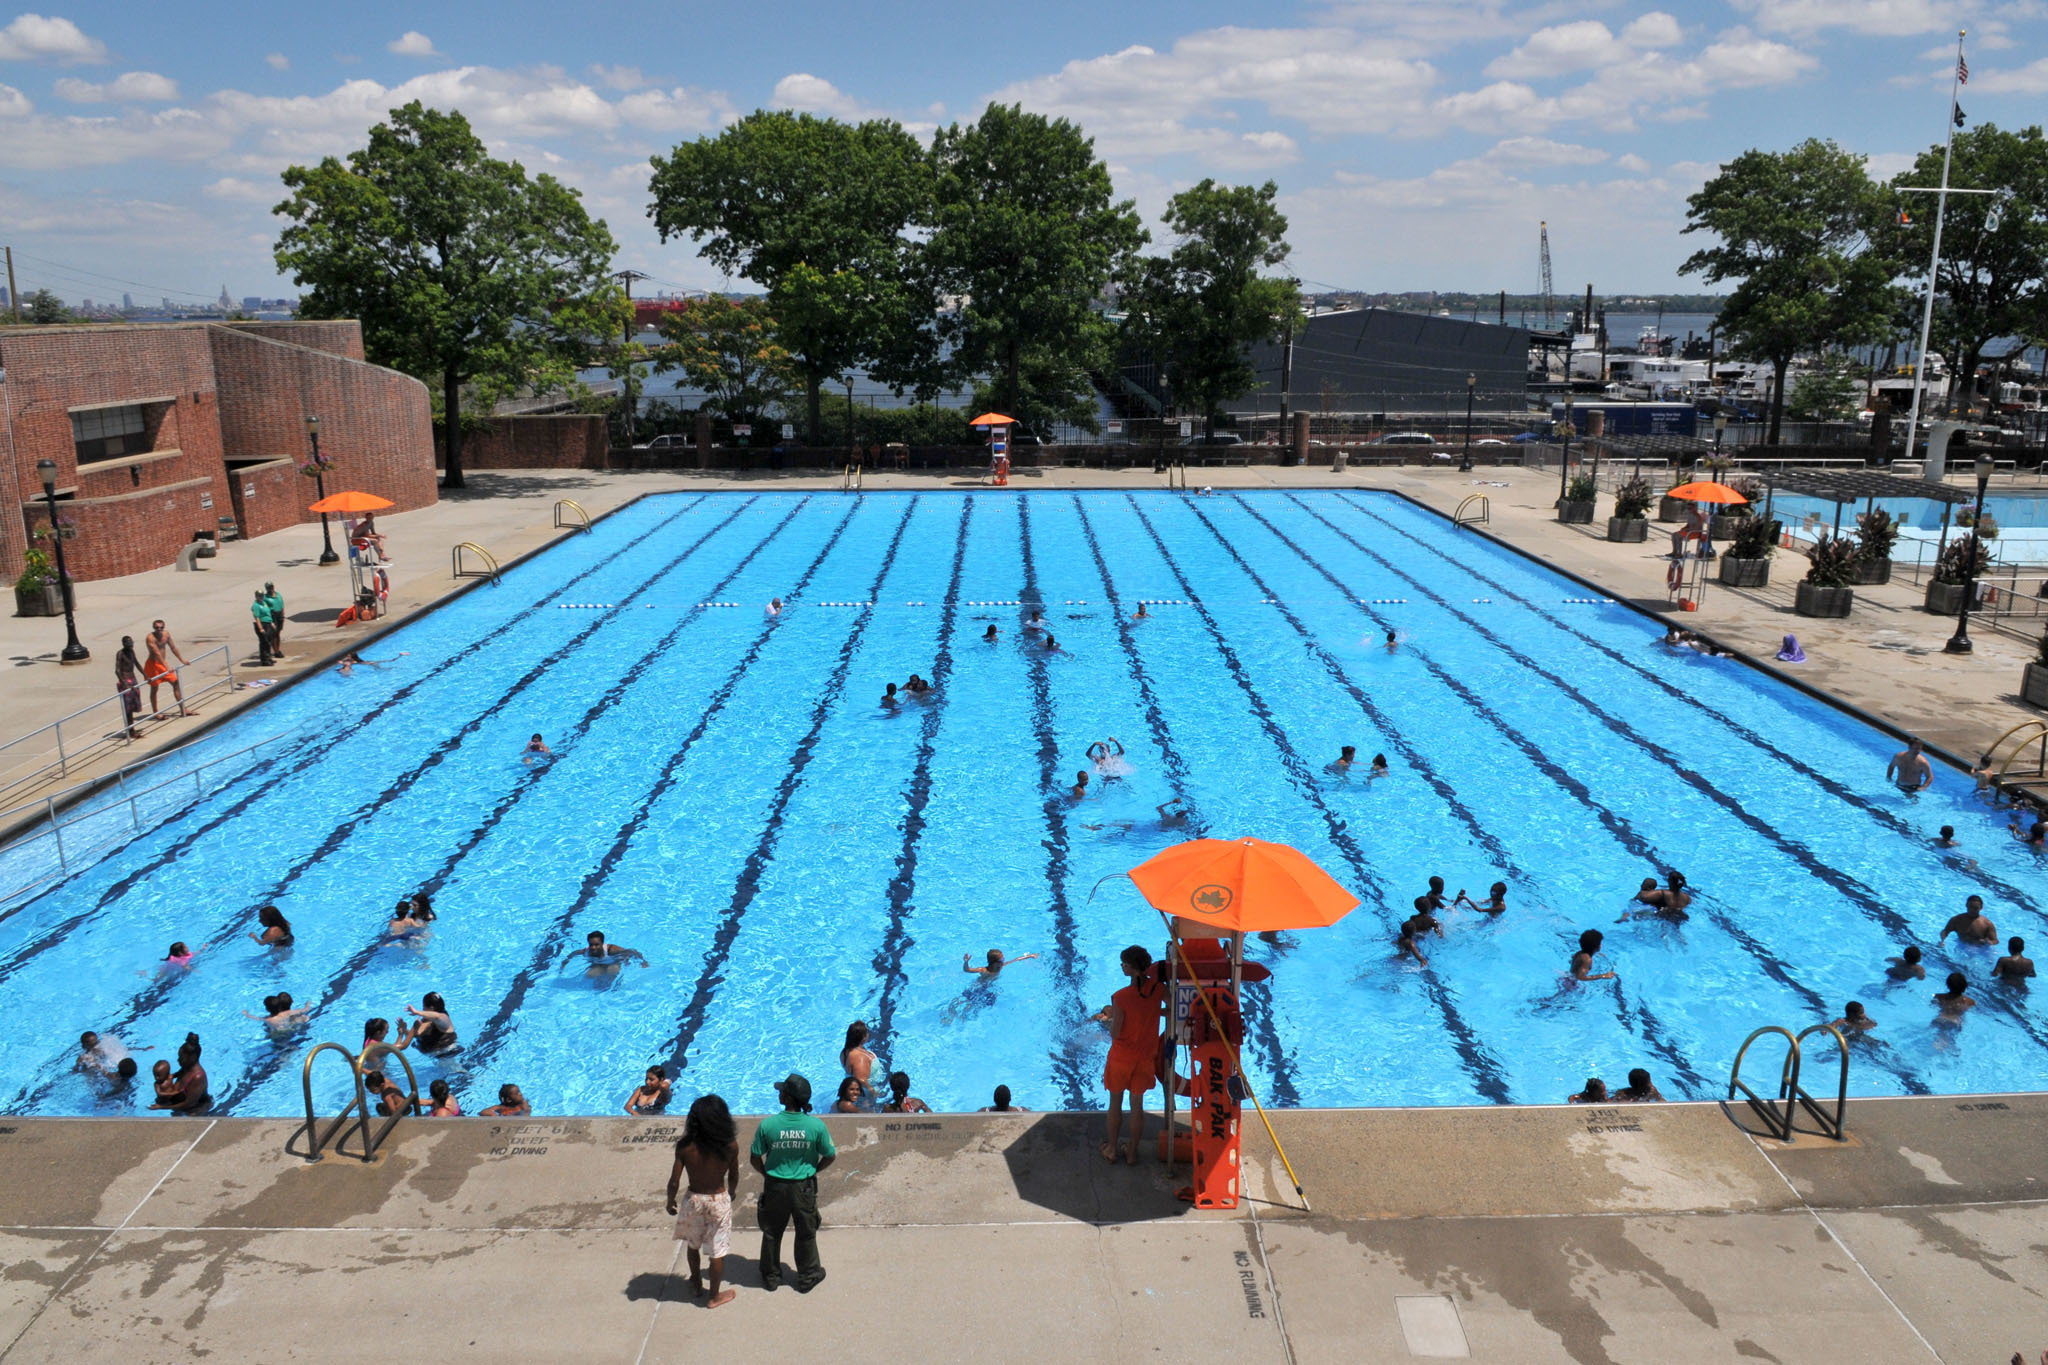 12 of the best public pools nyc has for swimming in summer - Outdoor swimming pools north west ...